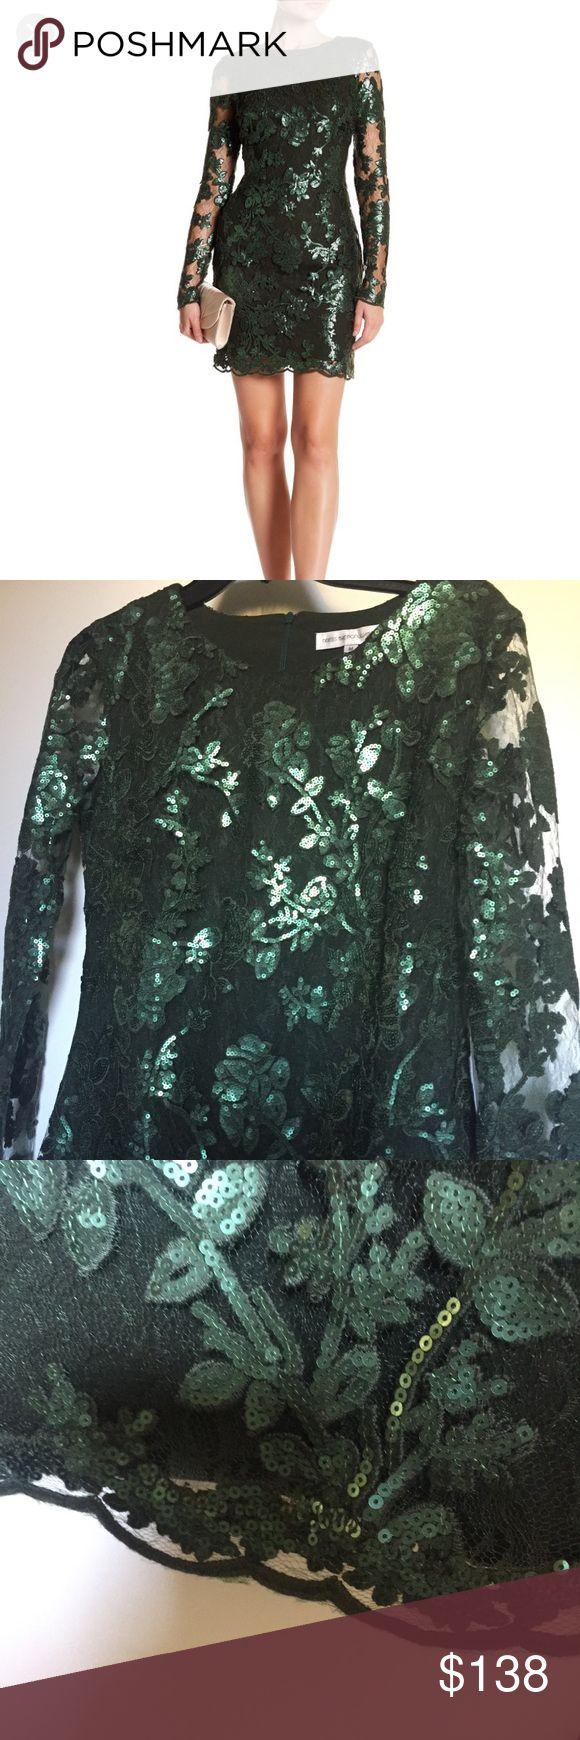 """Lace & Sequin Mini Shift Dress NWT Grace is olive. Color is a vibrant green, perfect for the holiday season!  Sheer lace mesh sleeves with floral sequin appliqués. Above the knee length. Hidden back zip. ‼️Two available - both labeled medium, but one is definitely a small.   Approx measurements: Larger of the two measured flat across, bust, waist, hip 19"""", 16"""", 20"""". Smaller of the two (posted as S, labeled as M) 17"""", 14"""", 18"""".  ‼️. Perfect for holiday, Christmas, special occasion, cocktail…"""